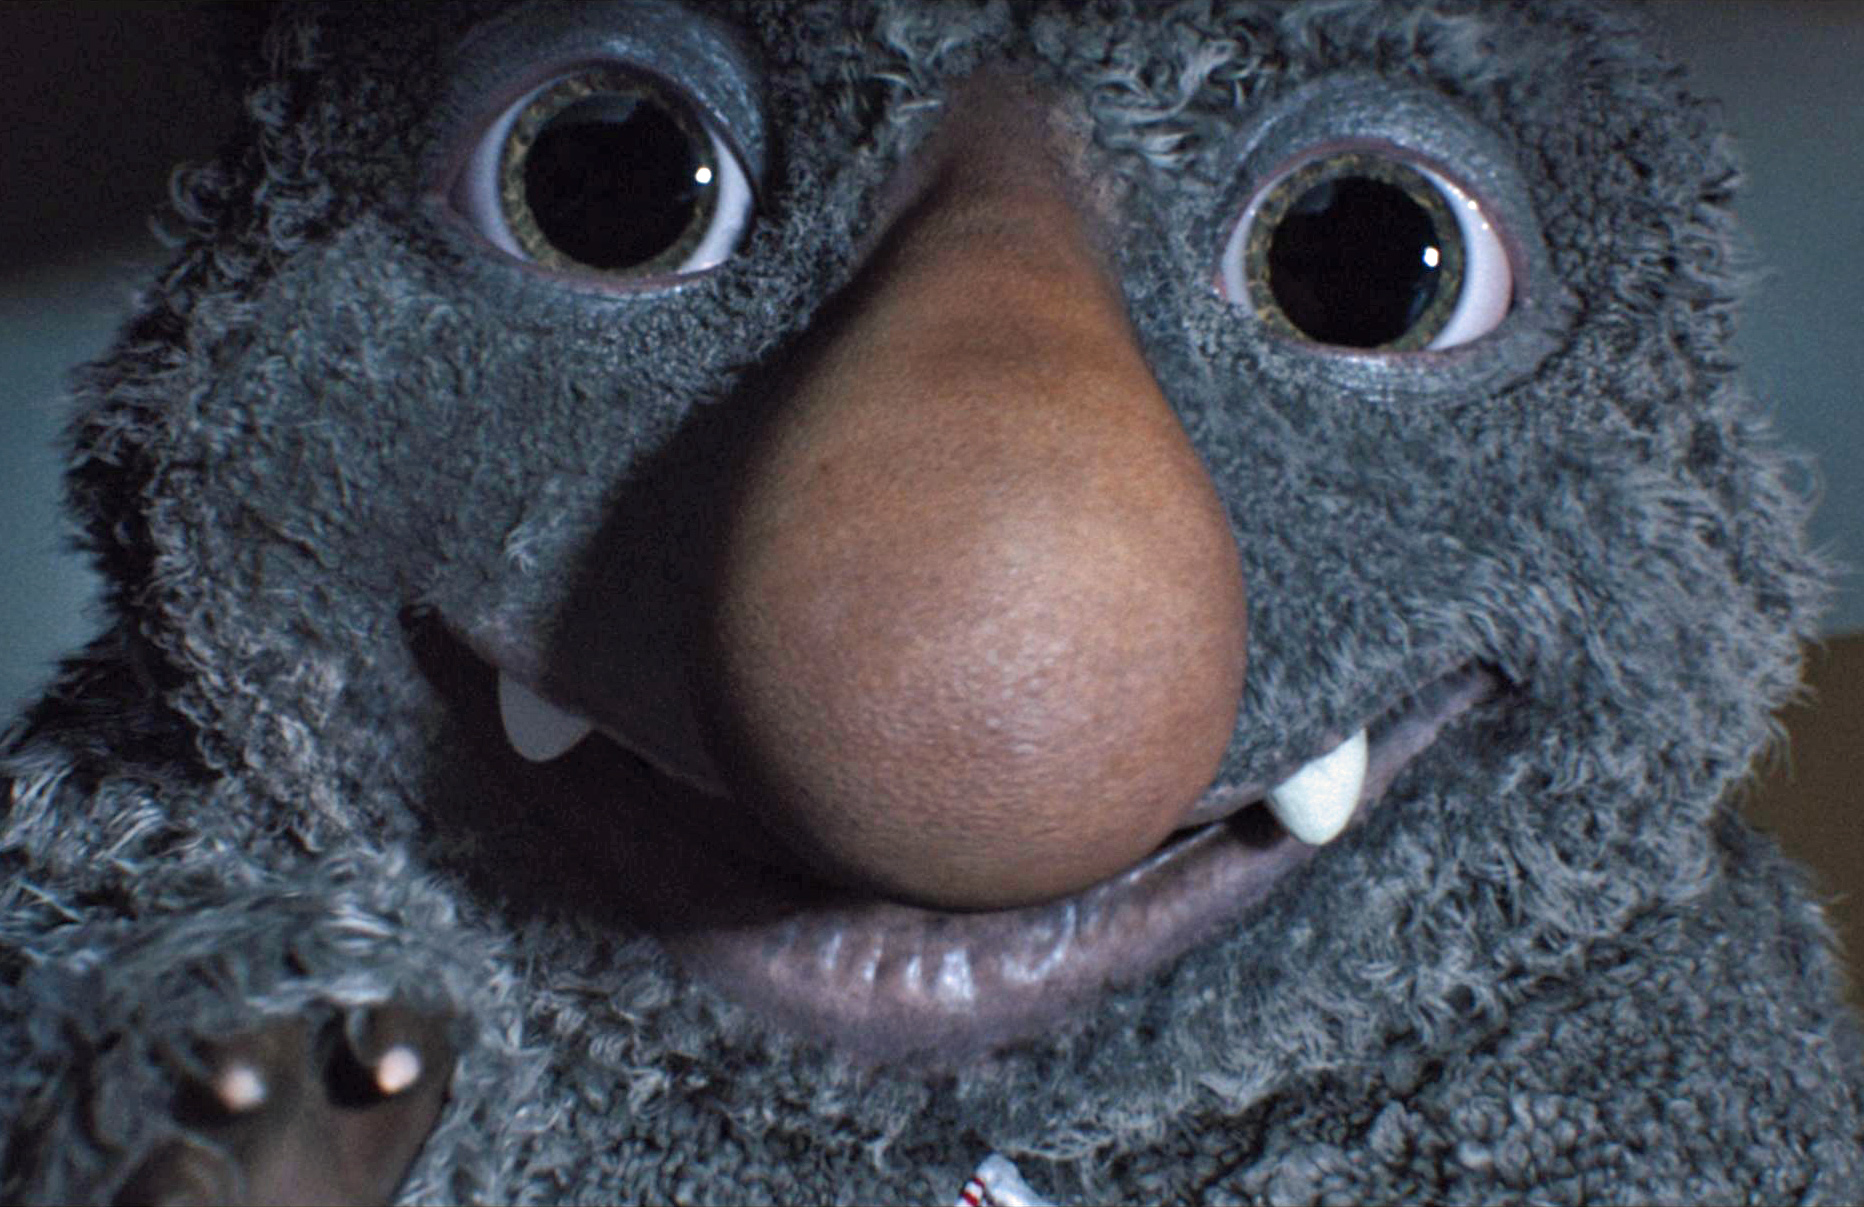 Monster magic for young boy in John Lewis Christmas ad